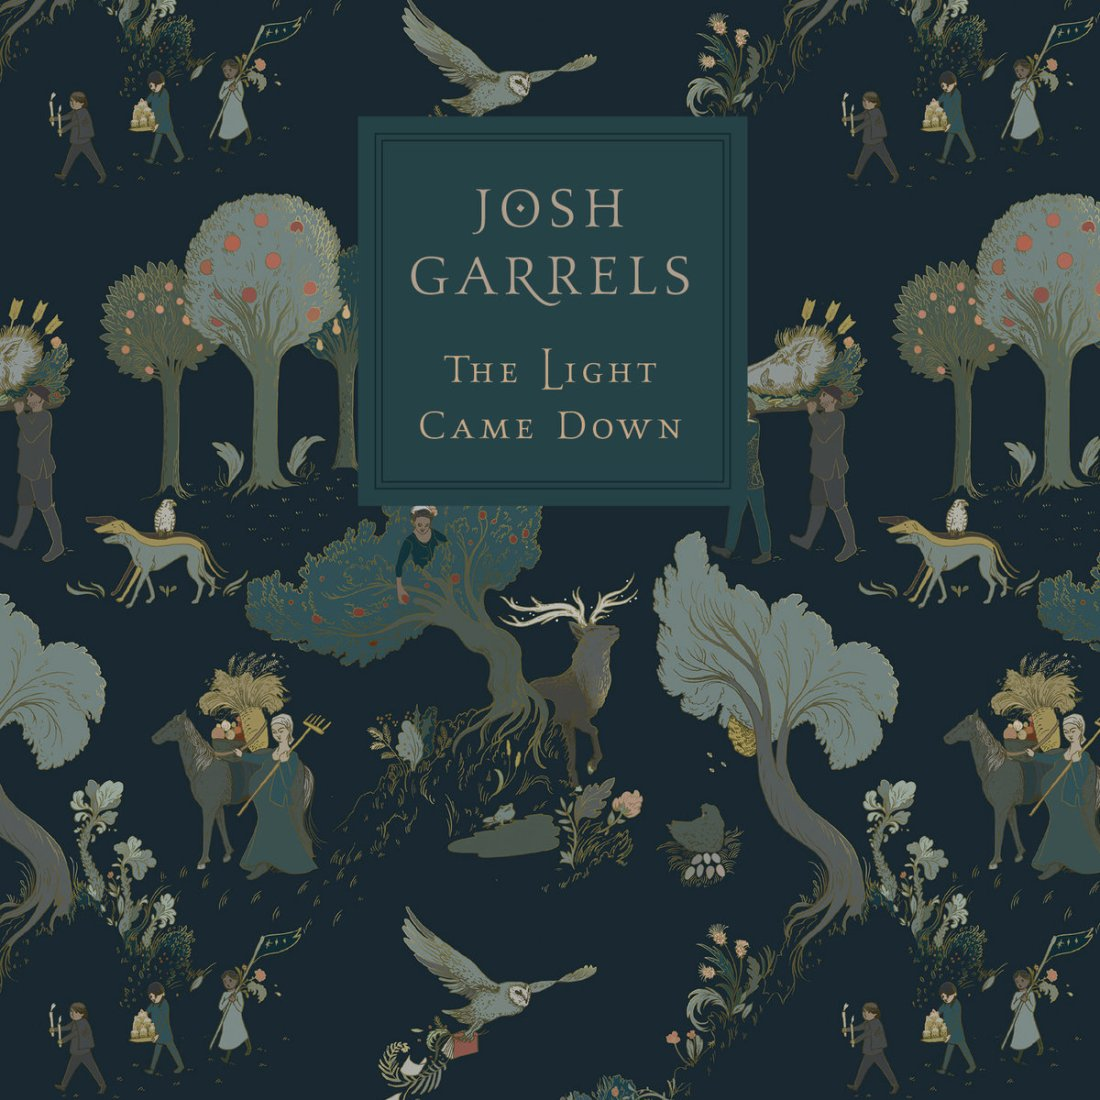 josh garrels _ light came down